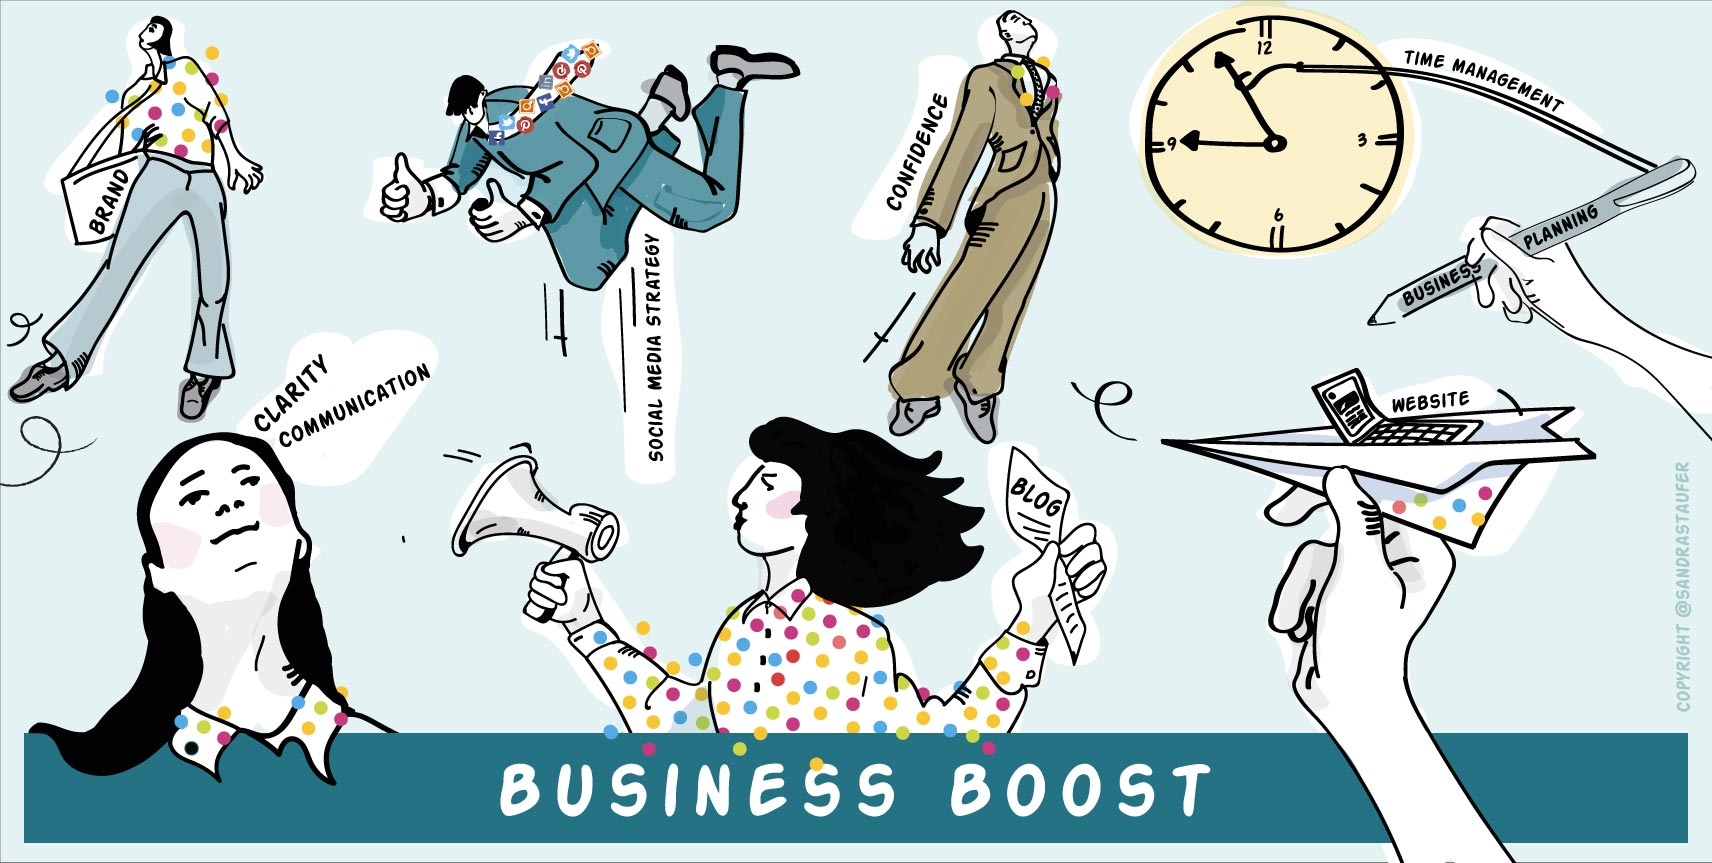 @SANDRA STAUFER ILLUSTARTION FOR HEADS-UP COACHING BOOST YOUR BUSINESS